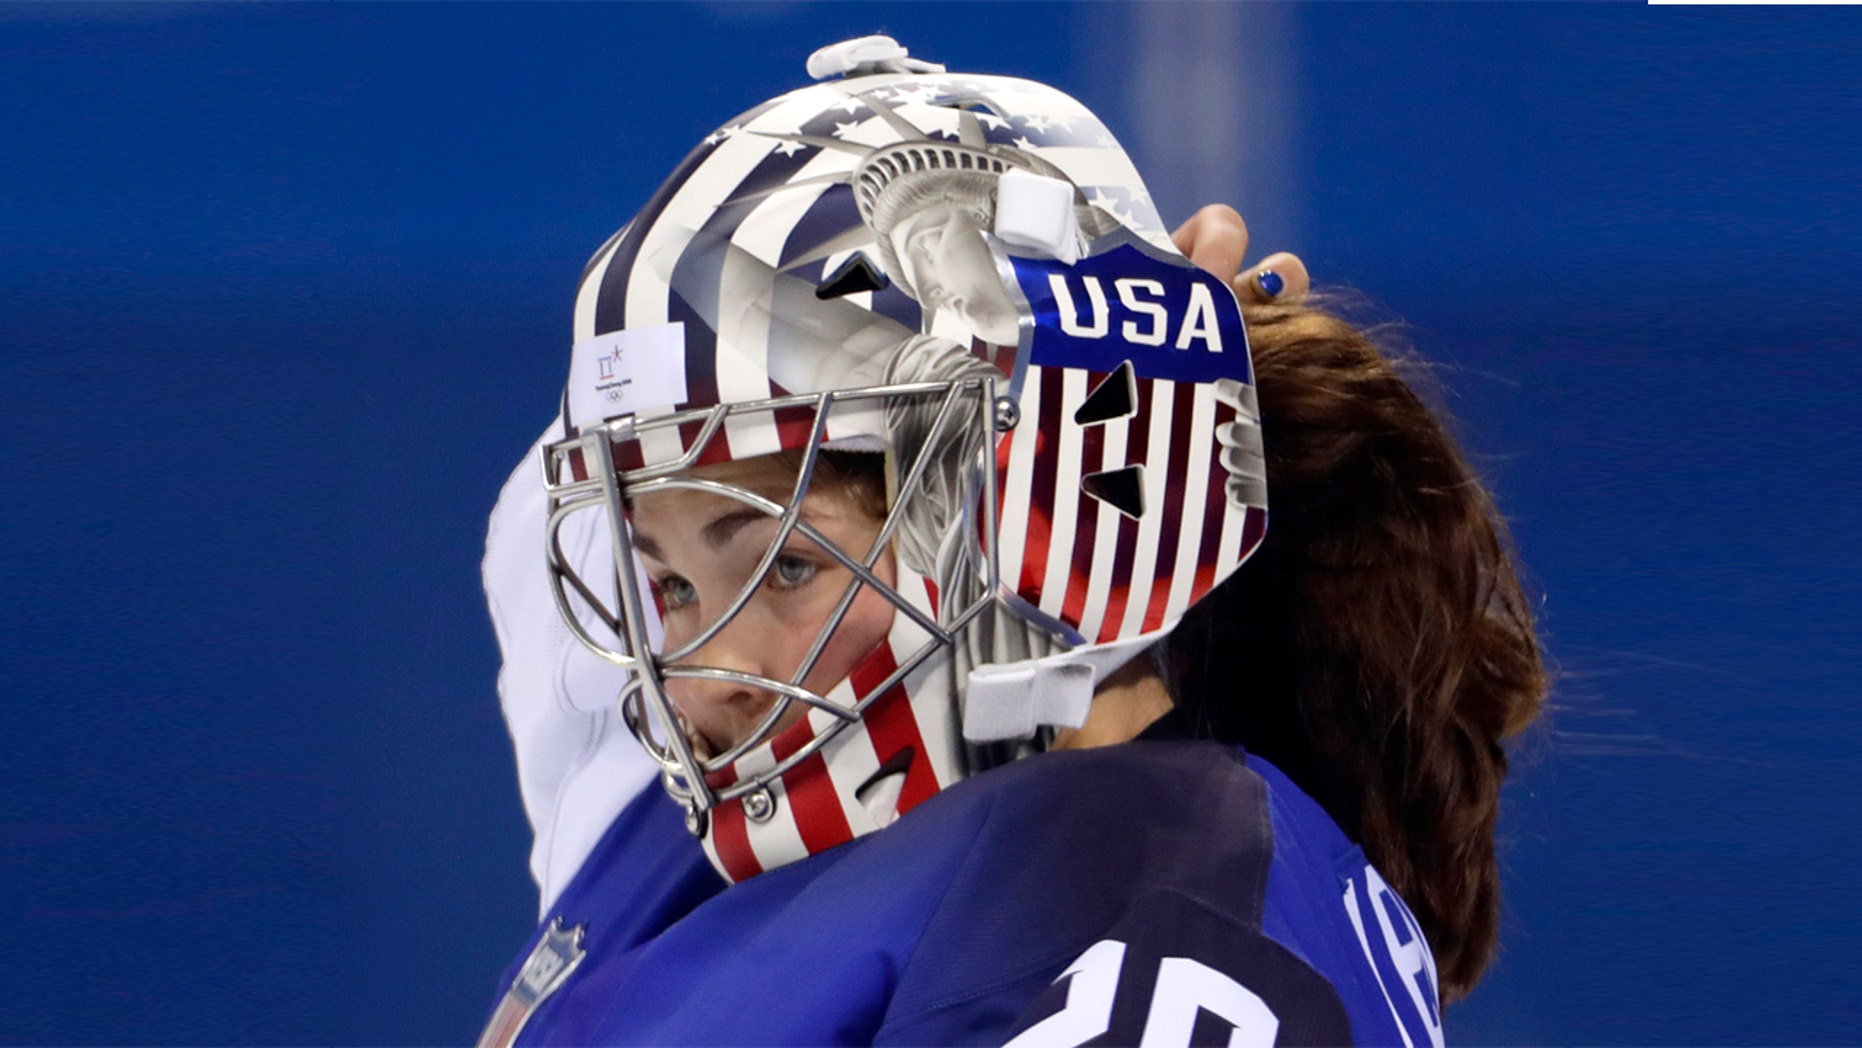 Team USA hockey goalkeeper Nicole Hensley, pictured, has been cleared by the International Olympic Committee to display the Statue of Liberty on her helmet as she competes in the 2018 Winter Games.